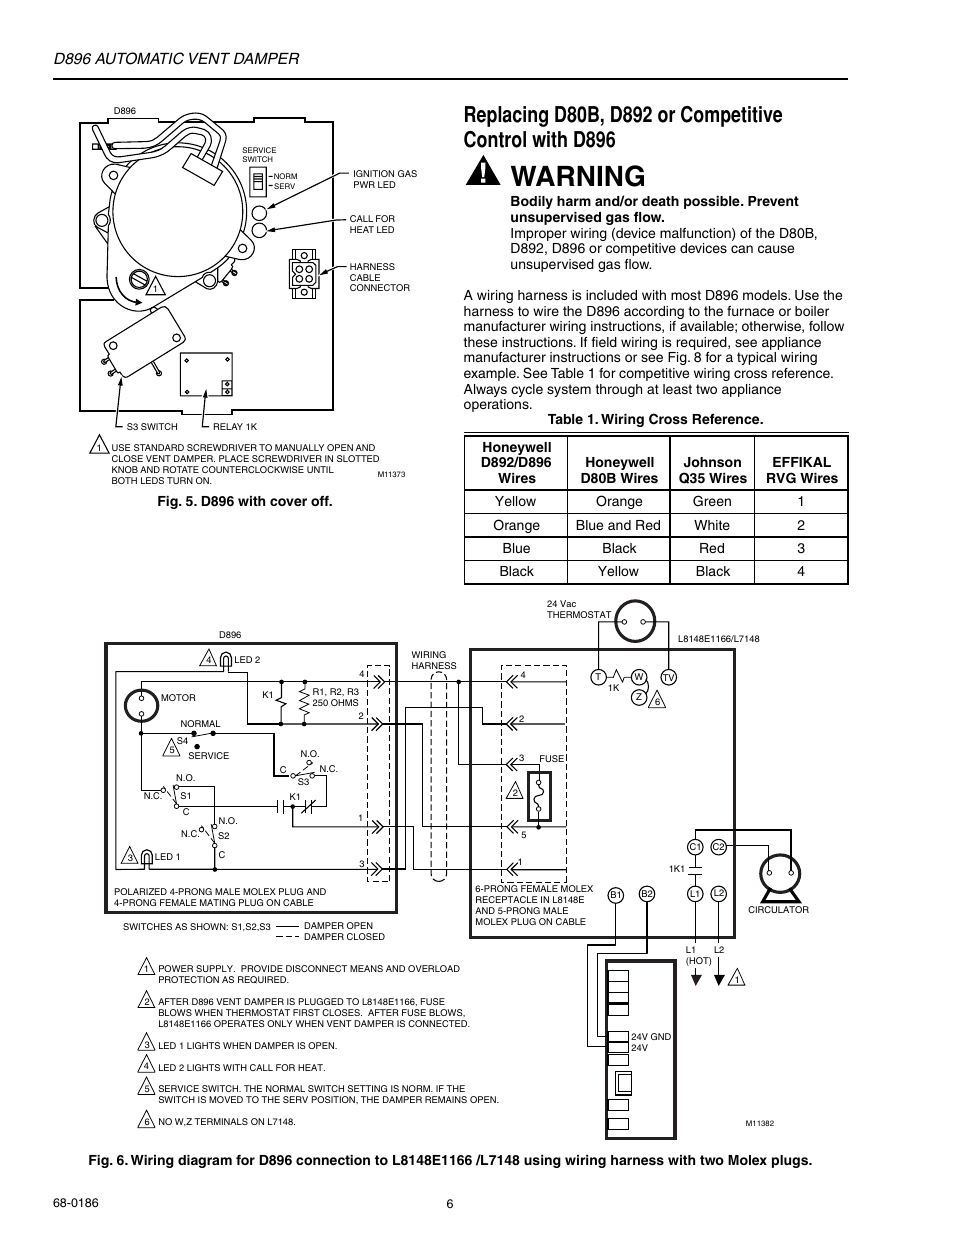 honeywell automatic vent damper d896 page6 warning, d896 automatic vent damper honeywell automatic vent field wiring harness at gsmportal.co